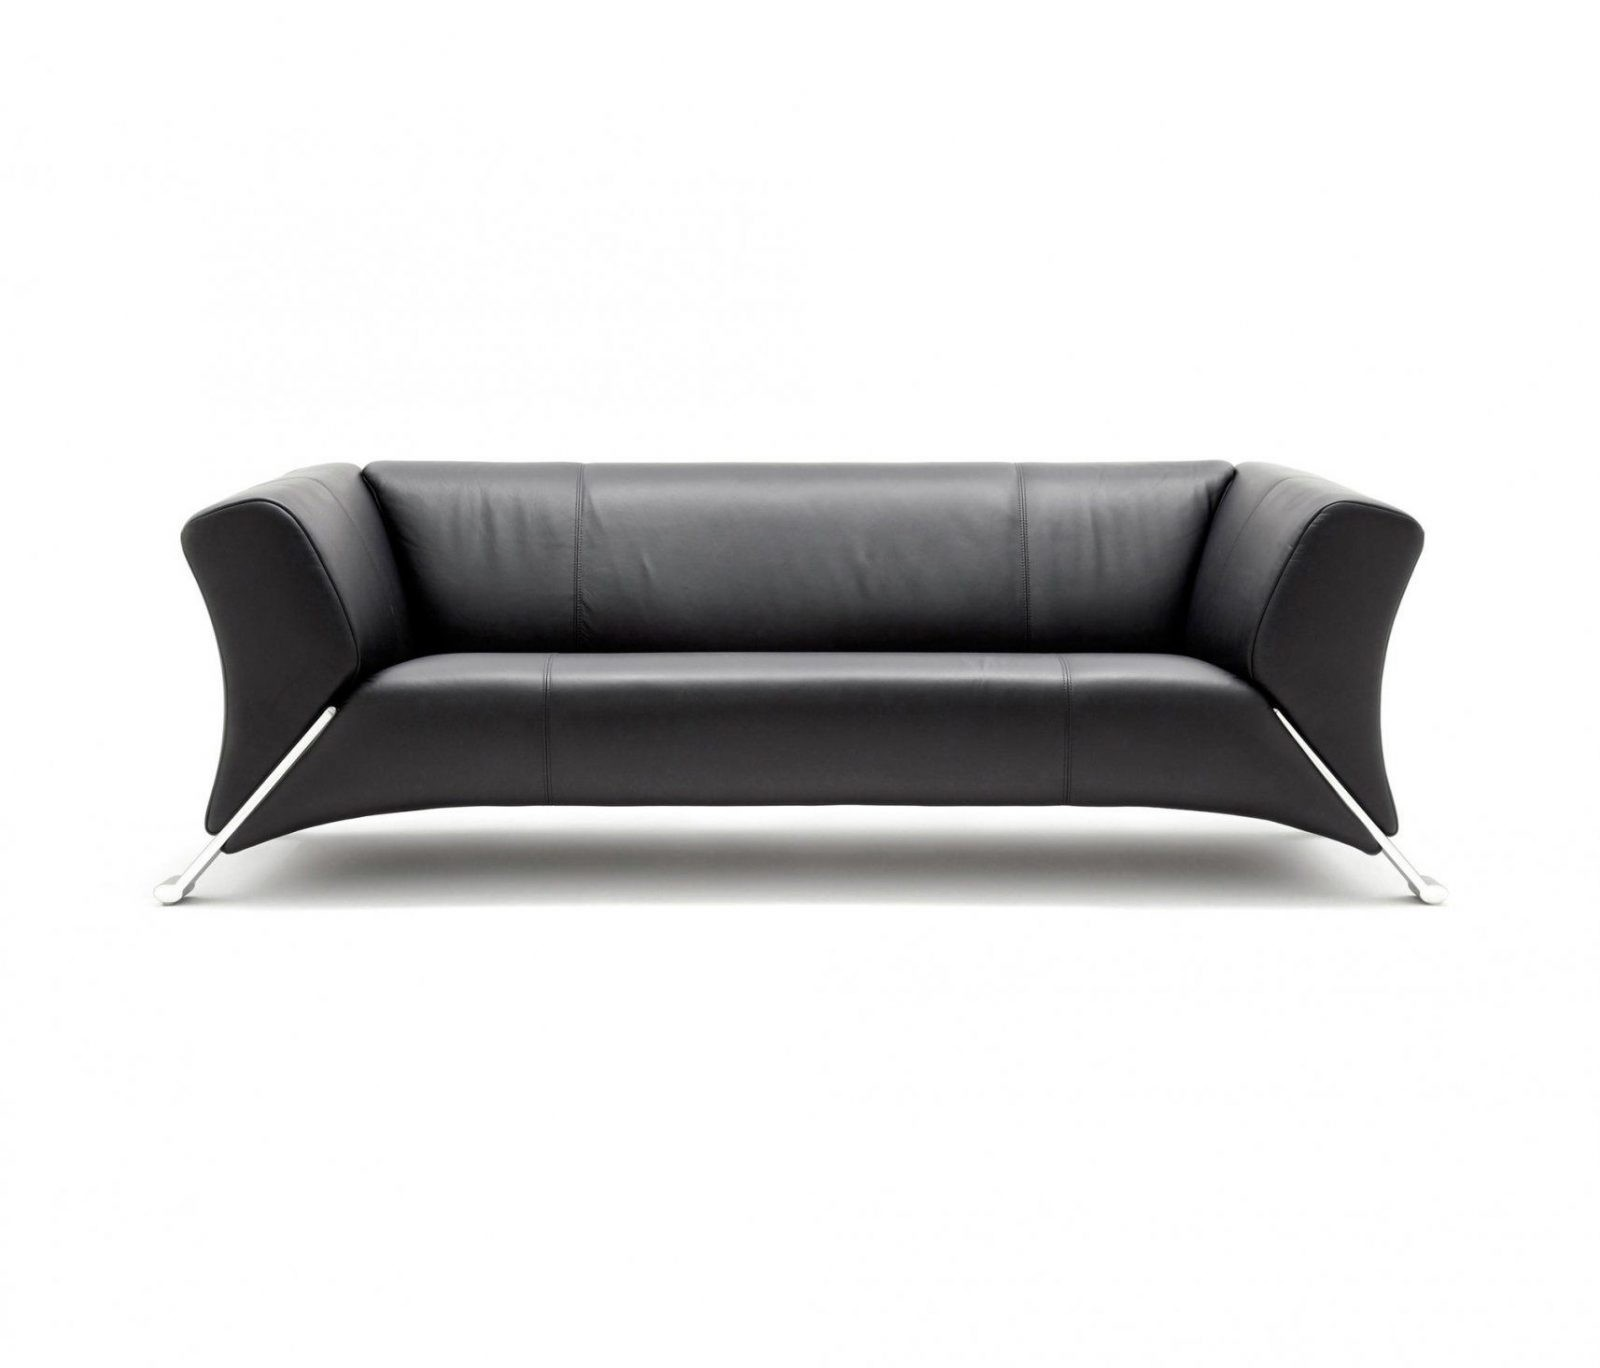 Rolf Benz 322  Lounge Sofas From Rolf Benz  Architonic von Rolf Benz Sofa 322 Photo